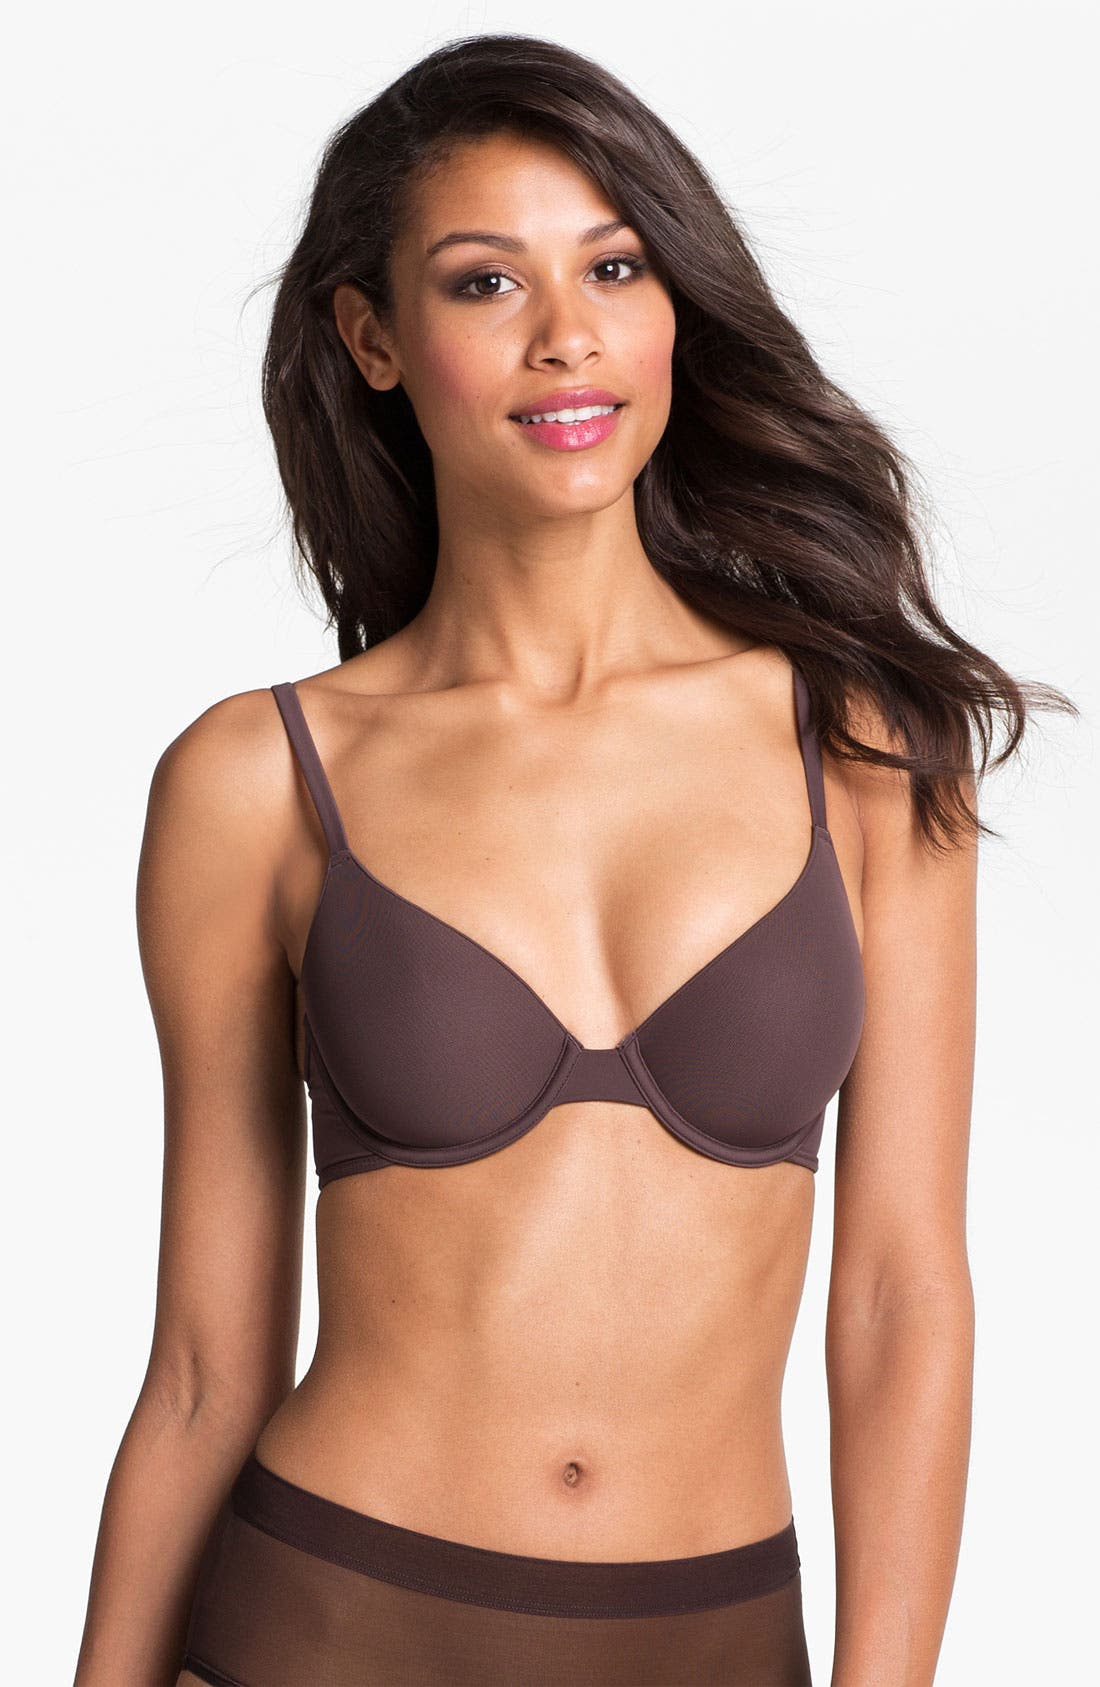 Alternate Image 1 Selected - Wacoal 'Smooth Complexion' Contour Underwire Bra